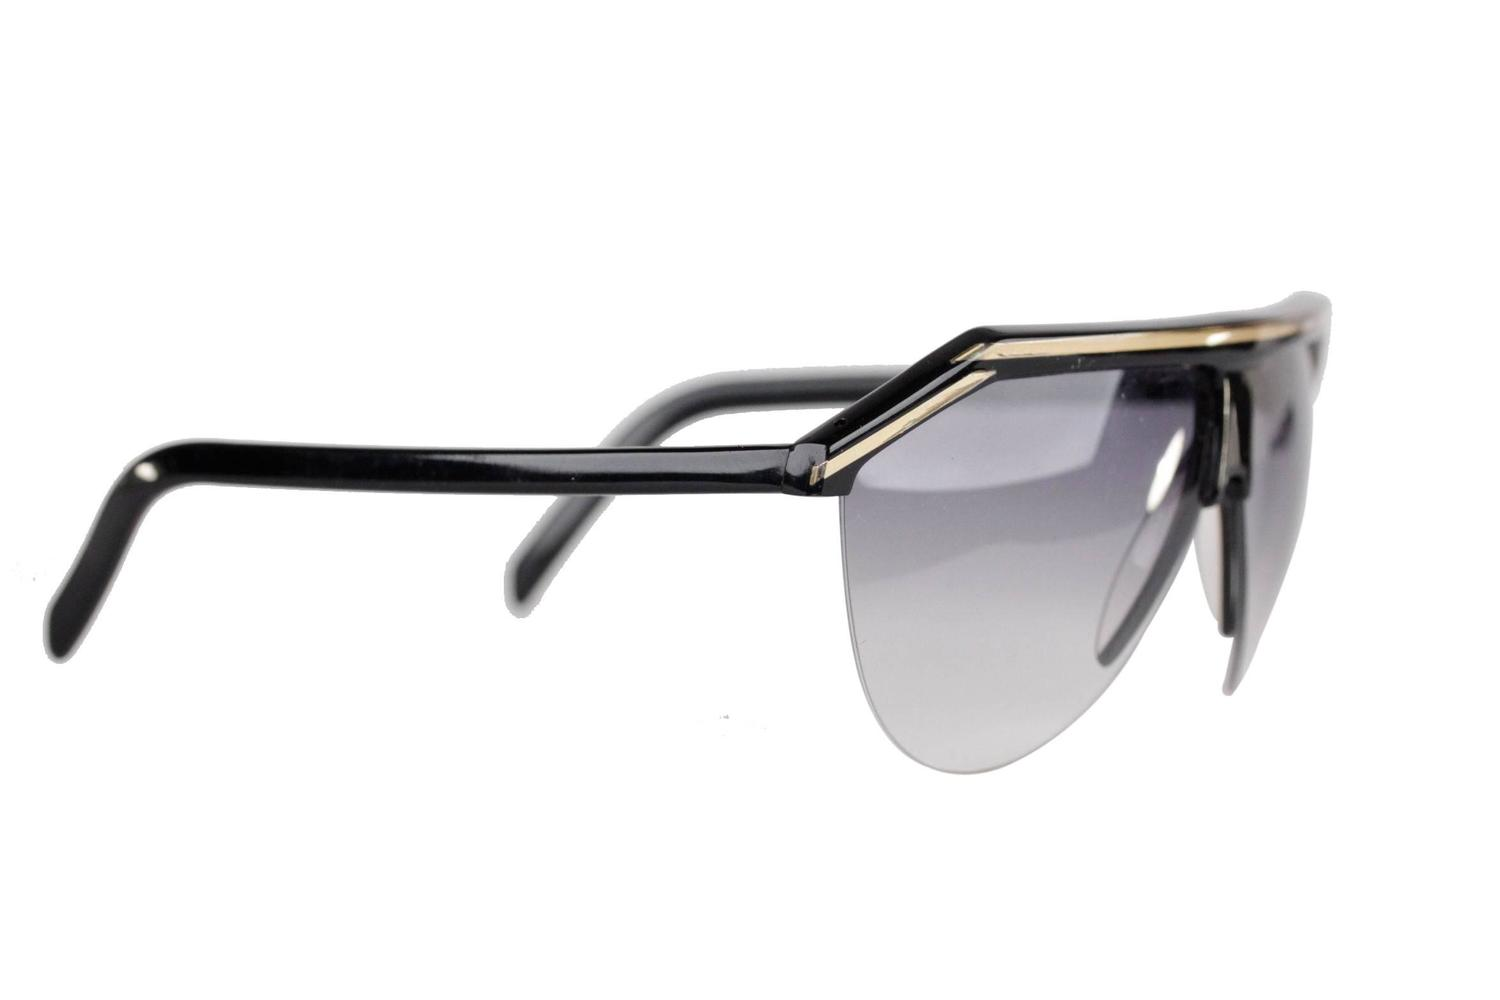 0938c1803fd9 Cartier Half Rim Sunglasses Black Gold